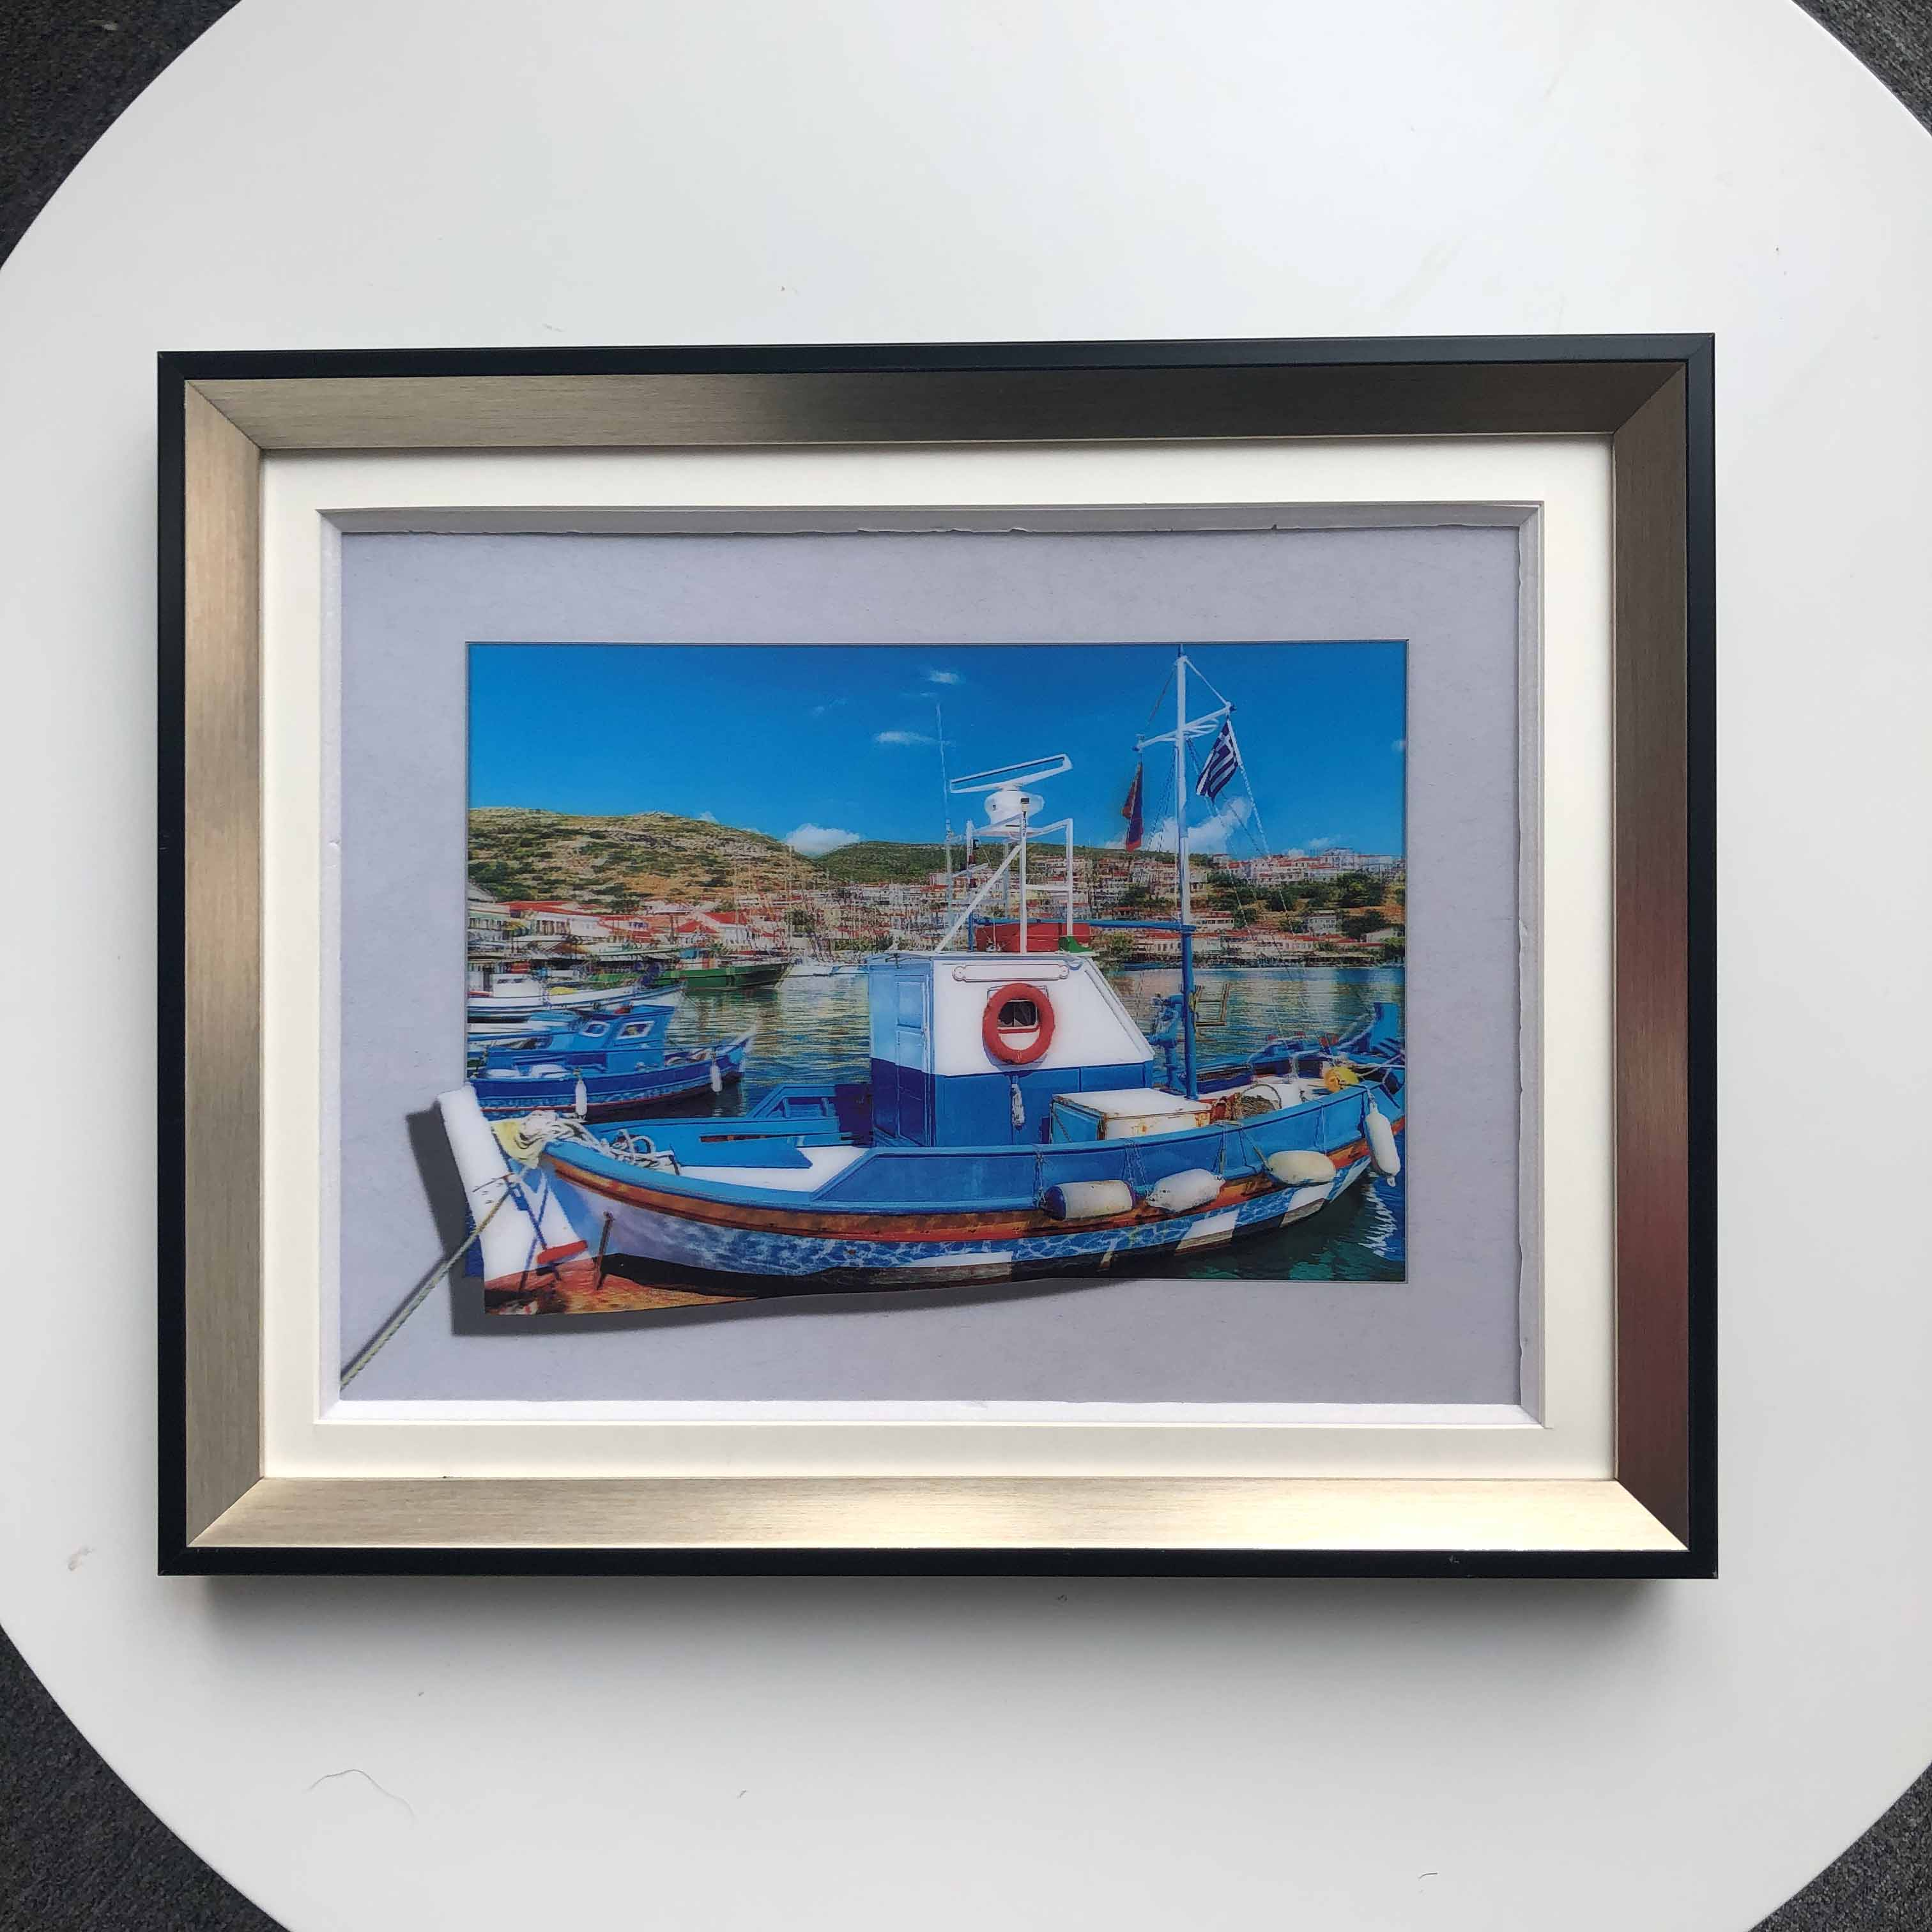 Wholesale 5D Picture Photo best 5D picture with fram for wall art of boat